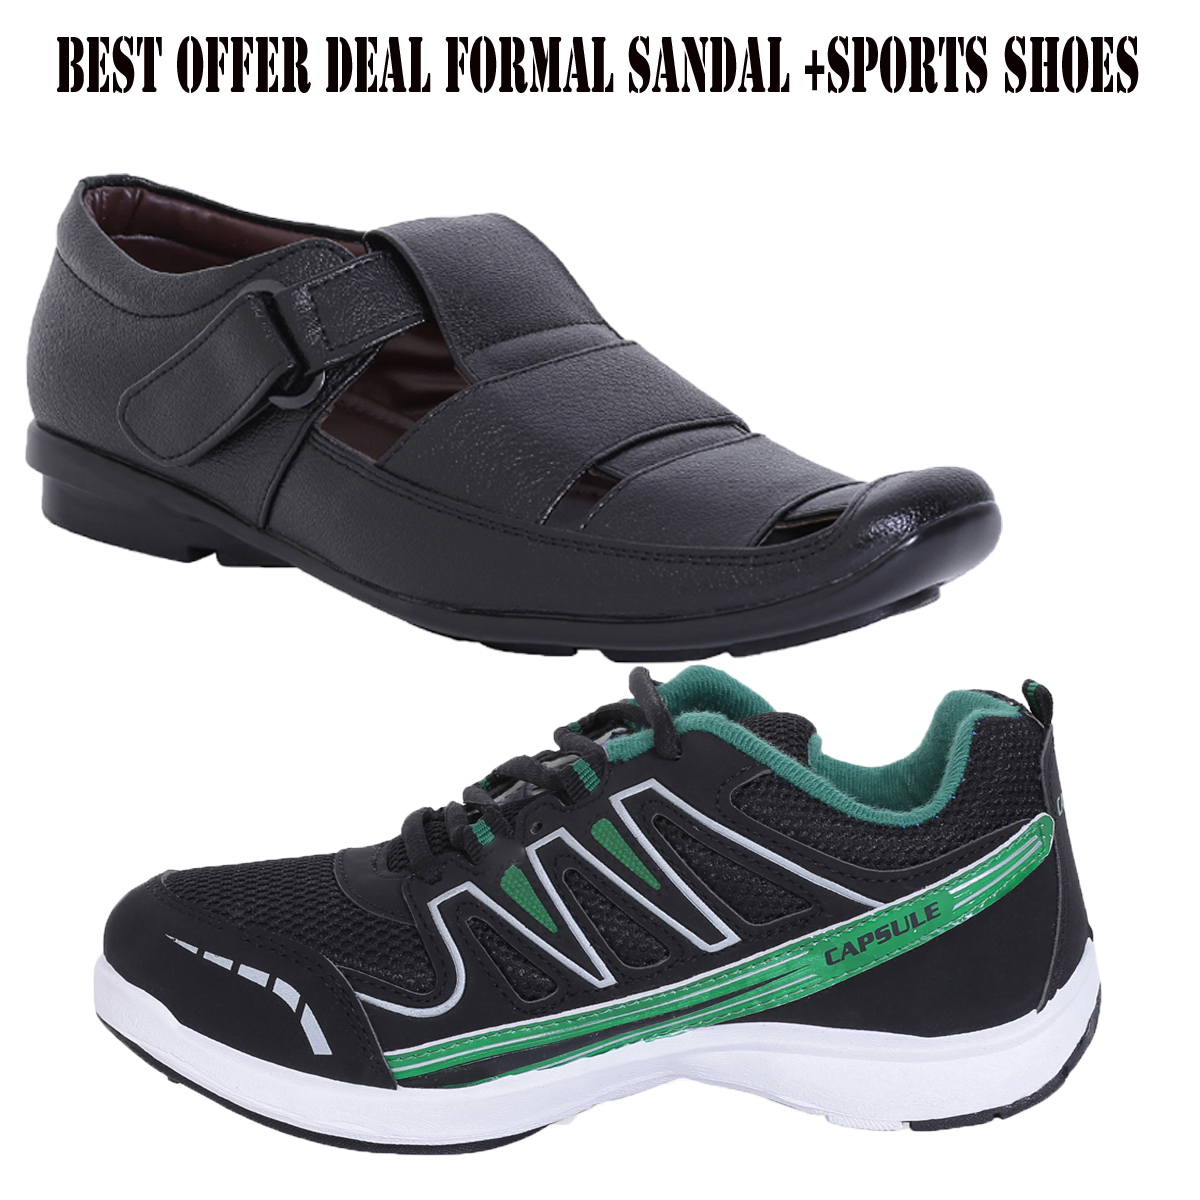 combo offer of stylish formal sandals and columbus sports